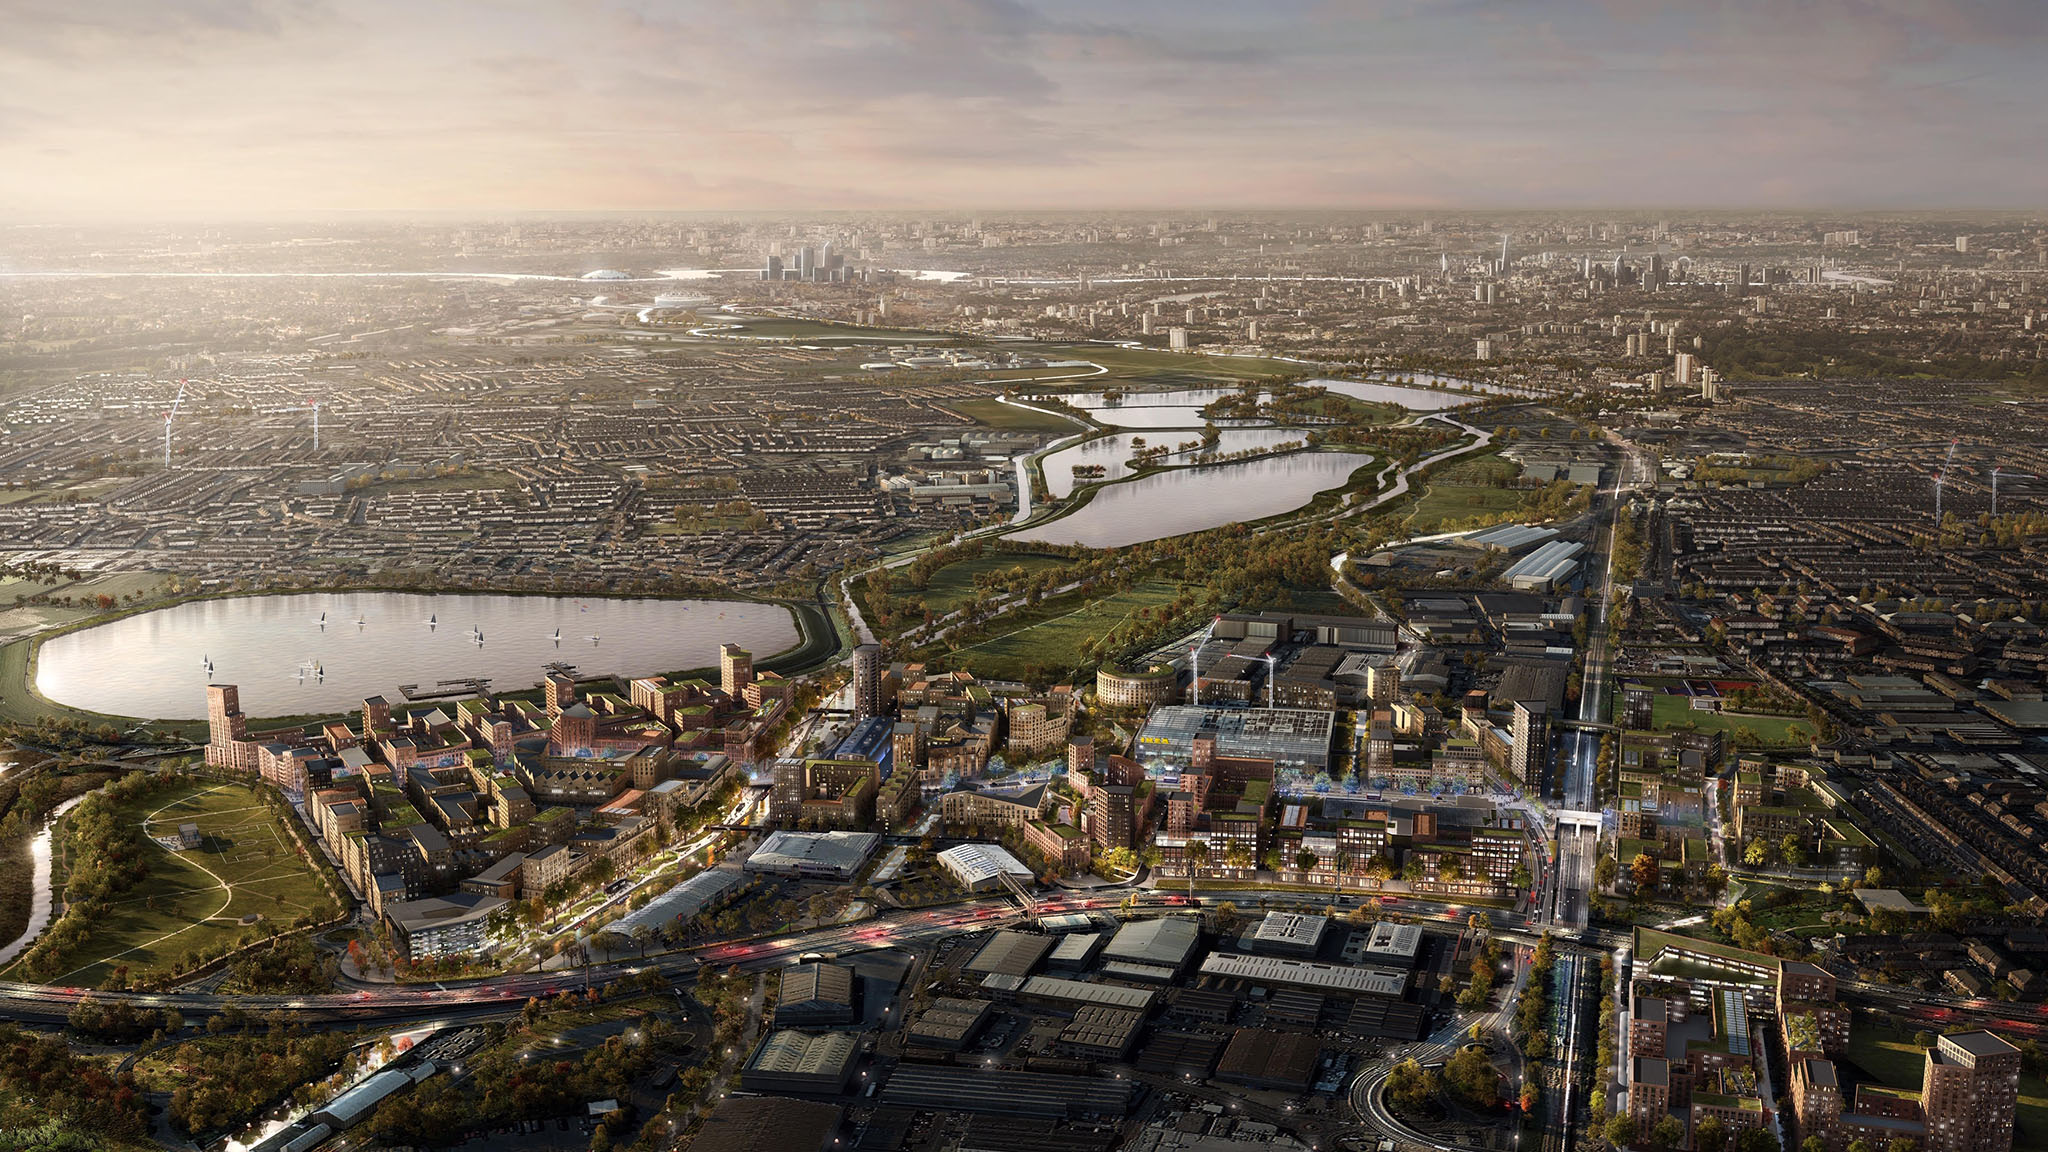 Adaptation, flexibility and opportunity to change are key to London's climate resilience